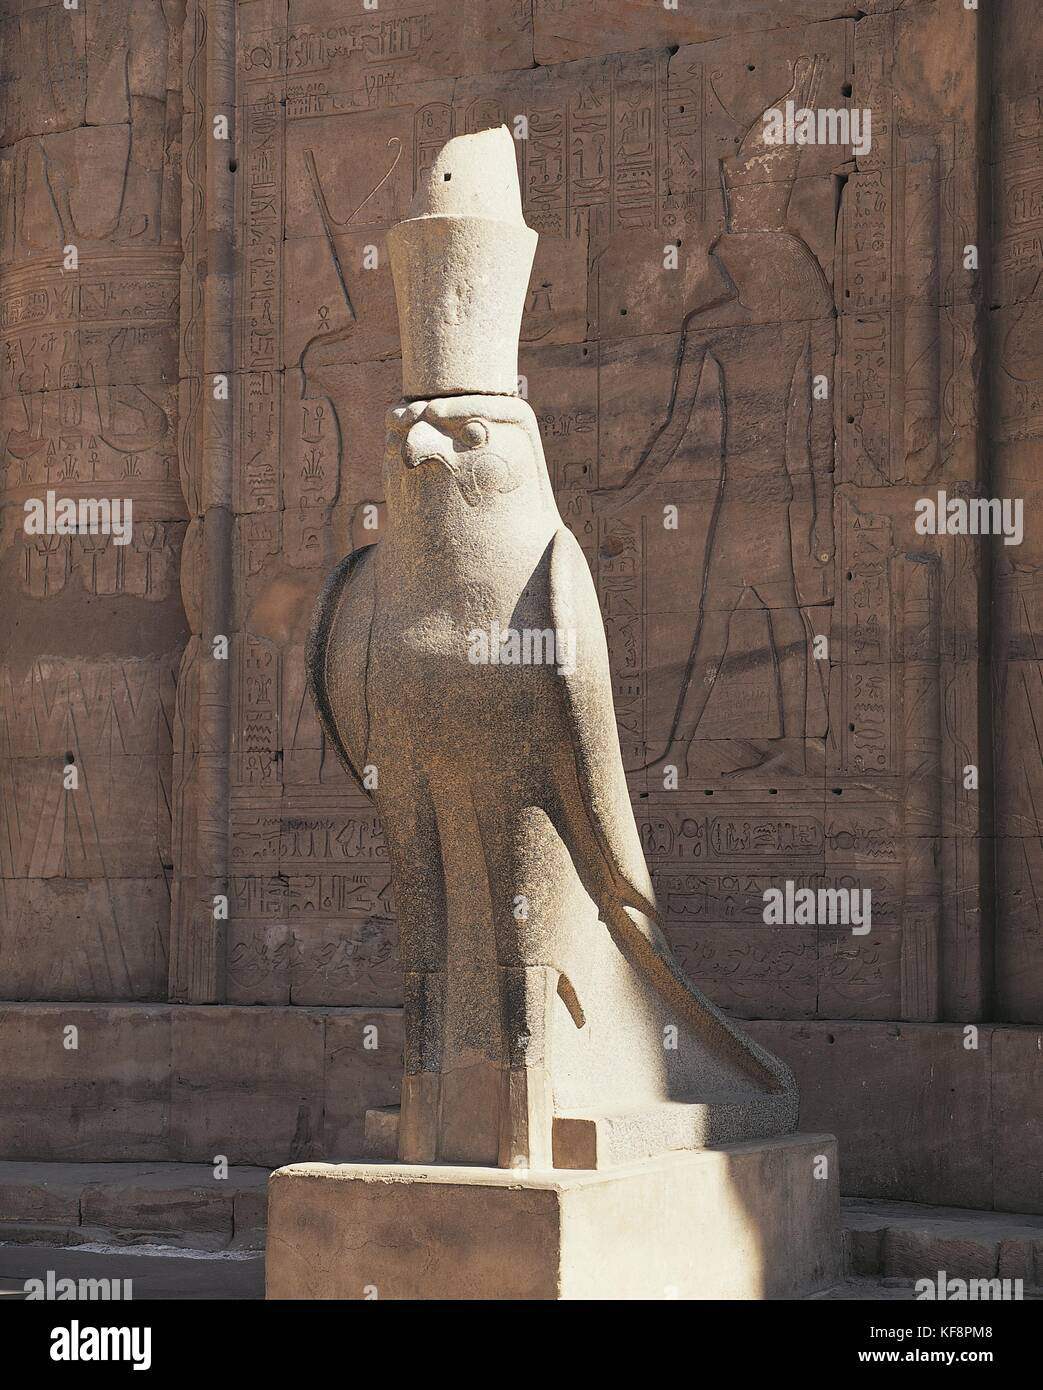 a look at ptolemaic egypt and the falcon of horus